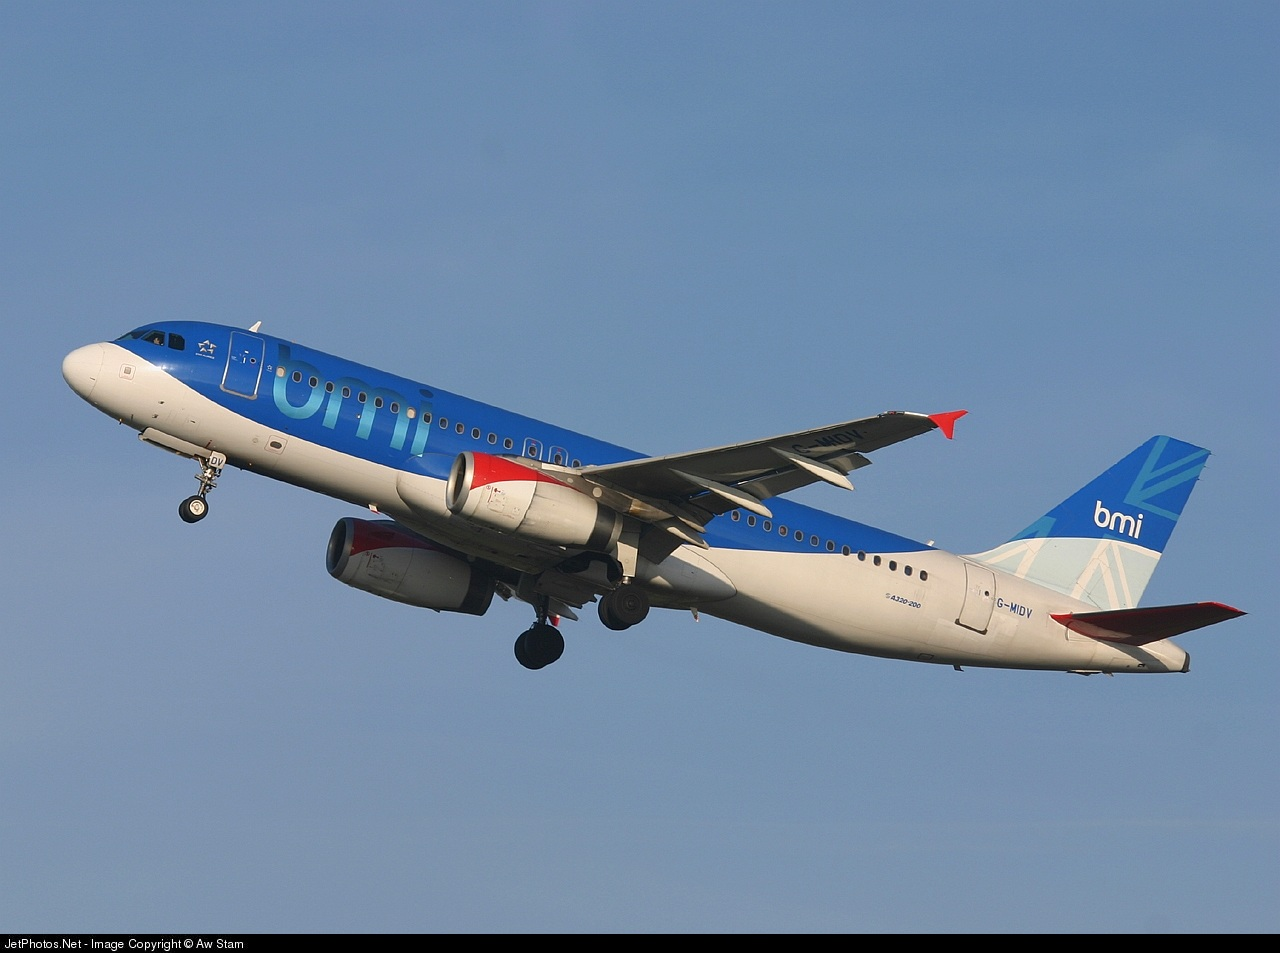 Photo of G-MIDV Airbus A320-232 by Aw Stam